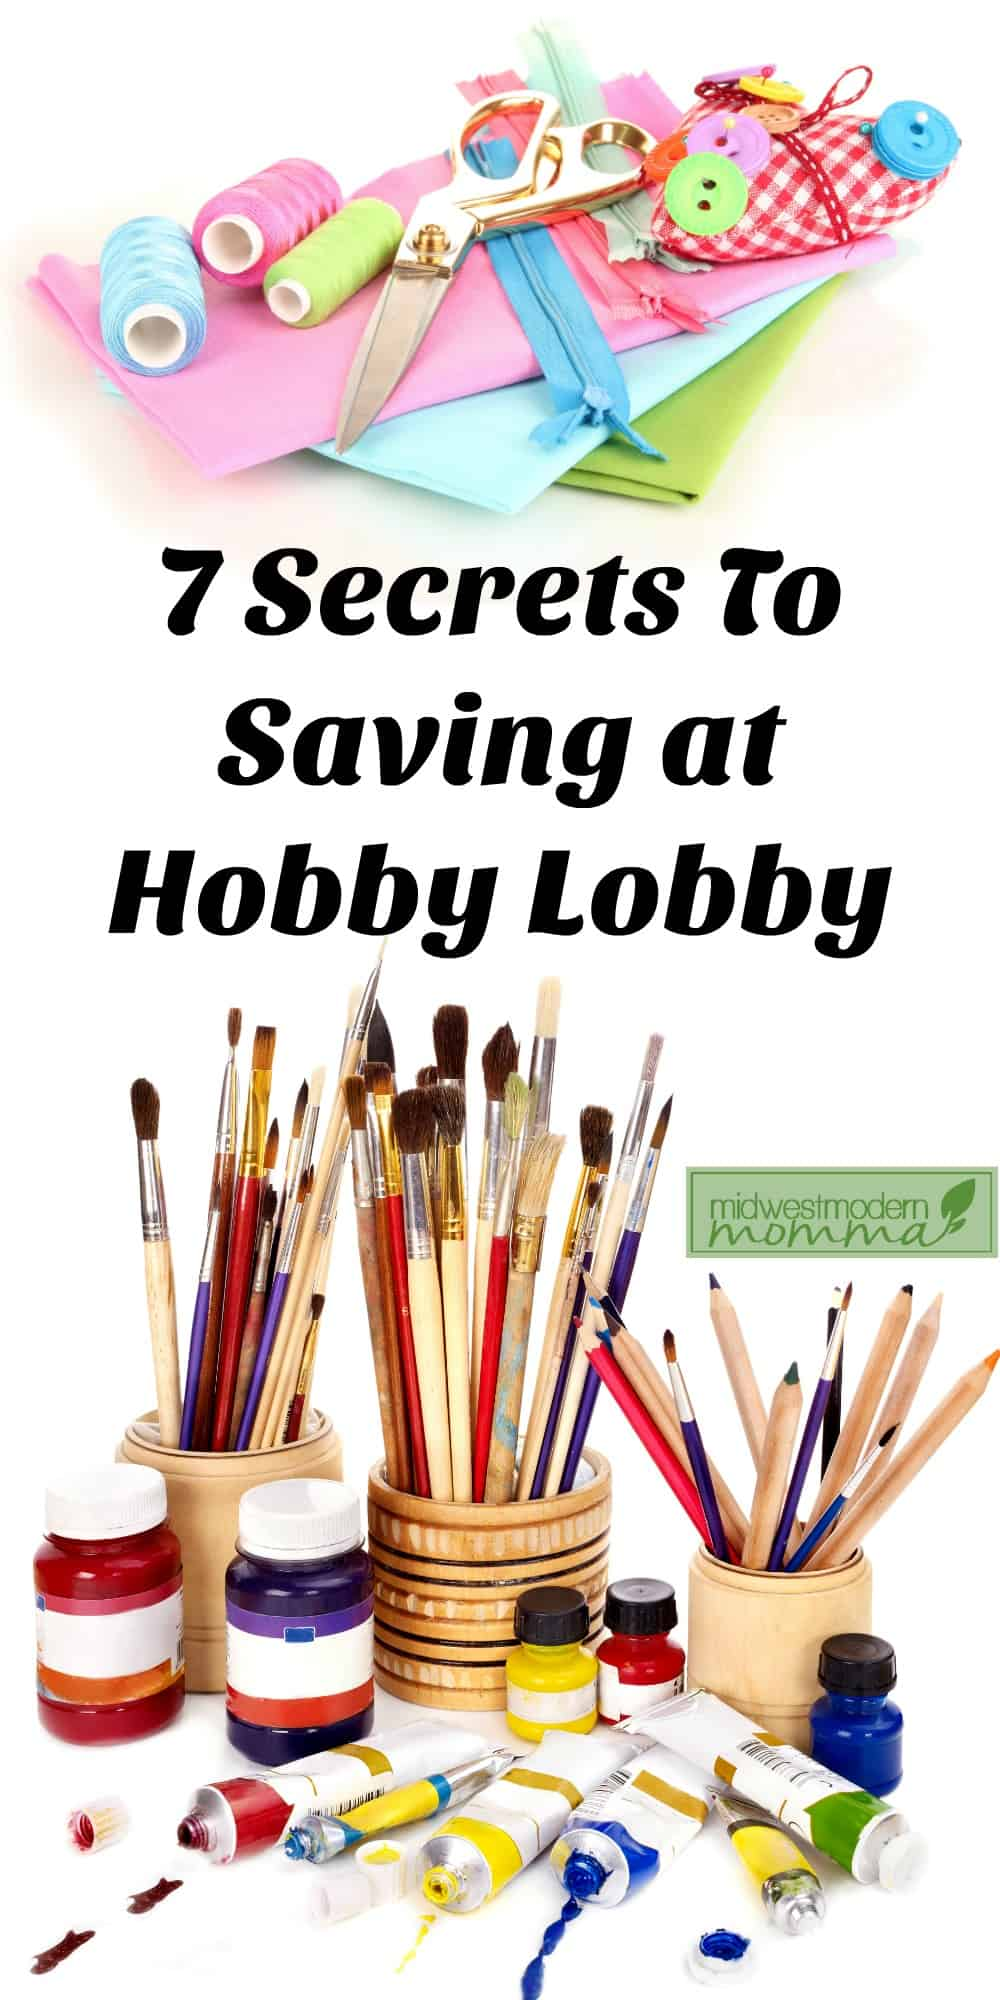 7 Secrets to Saving at Hobby Lobby